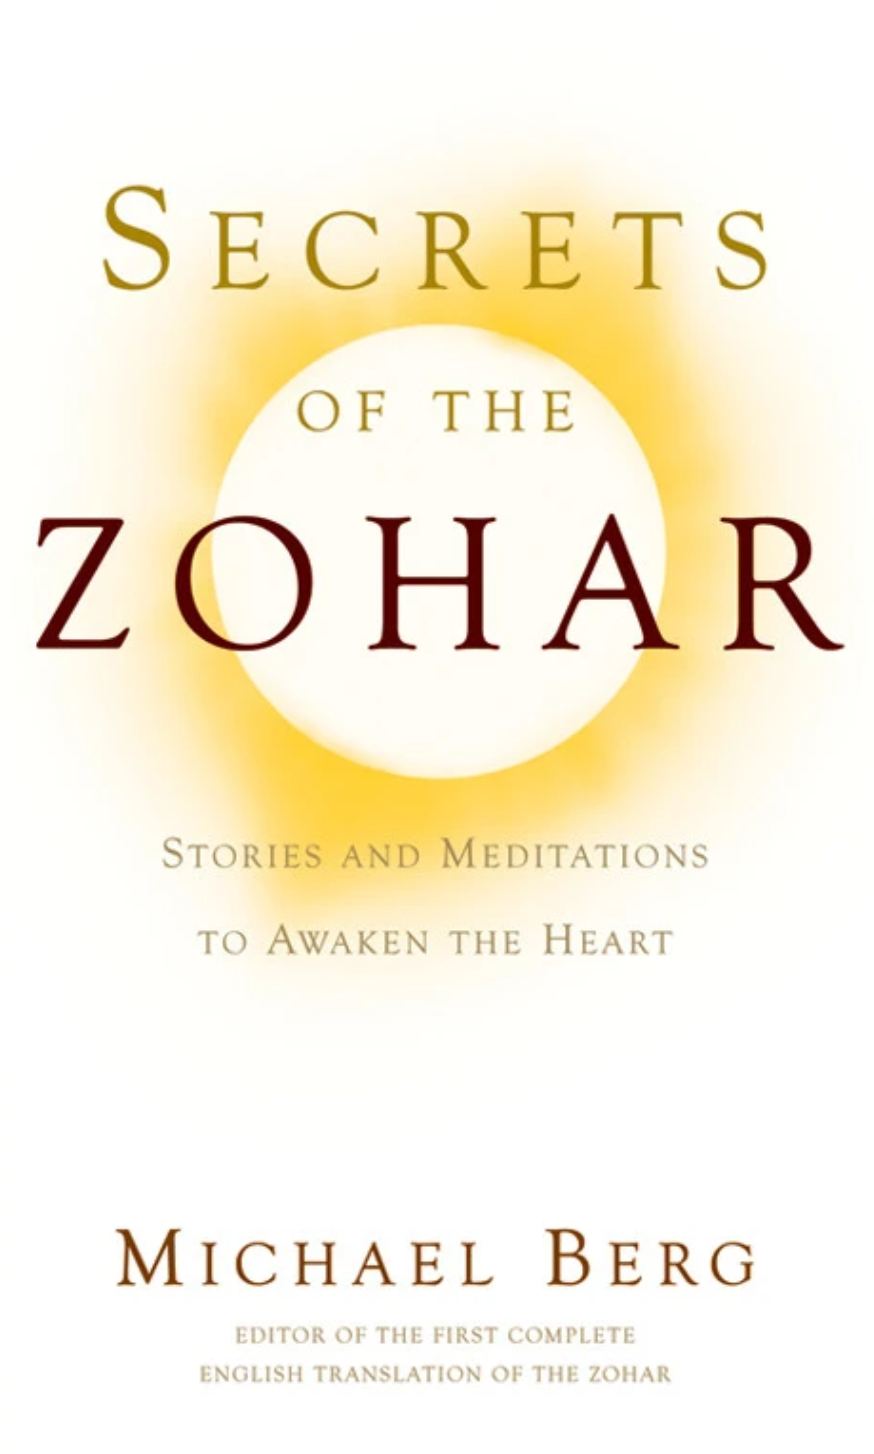 Secrets of The Zohar